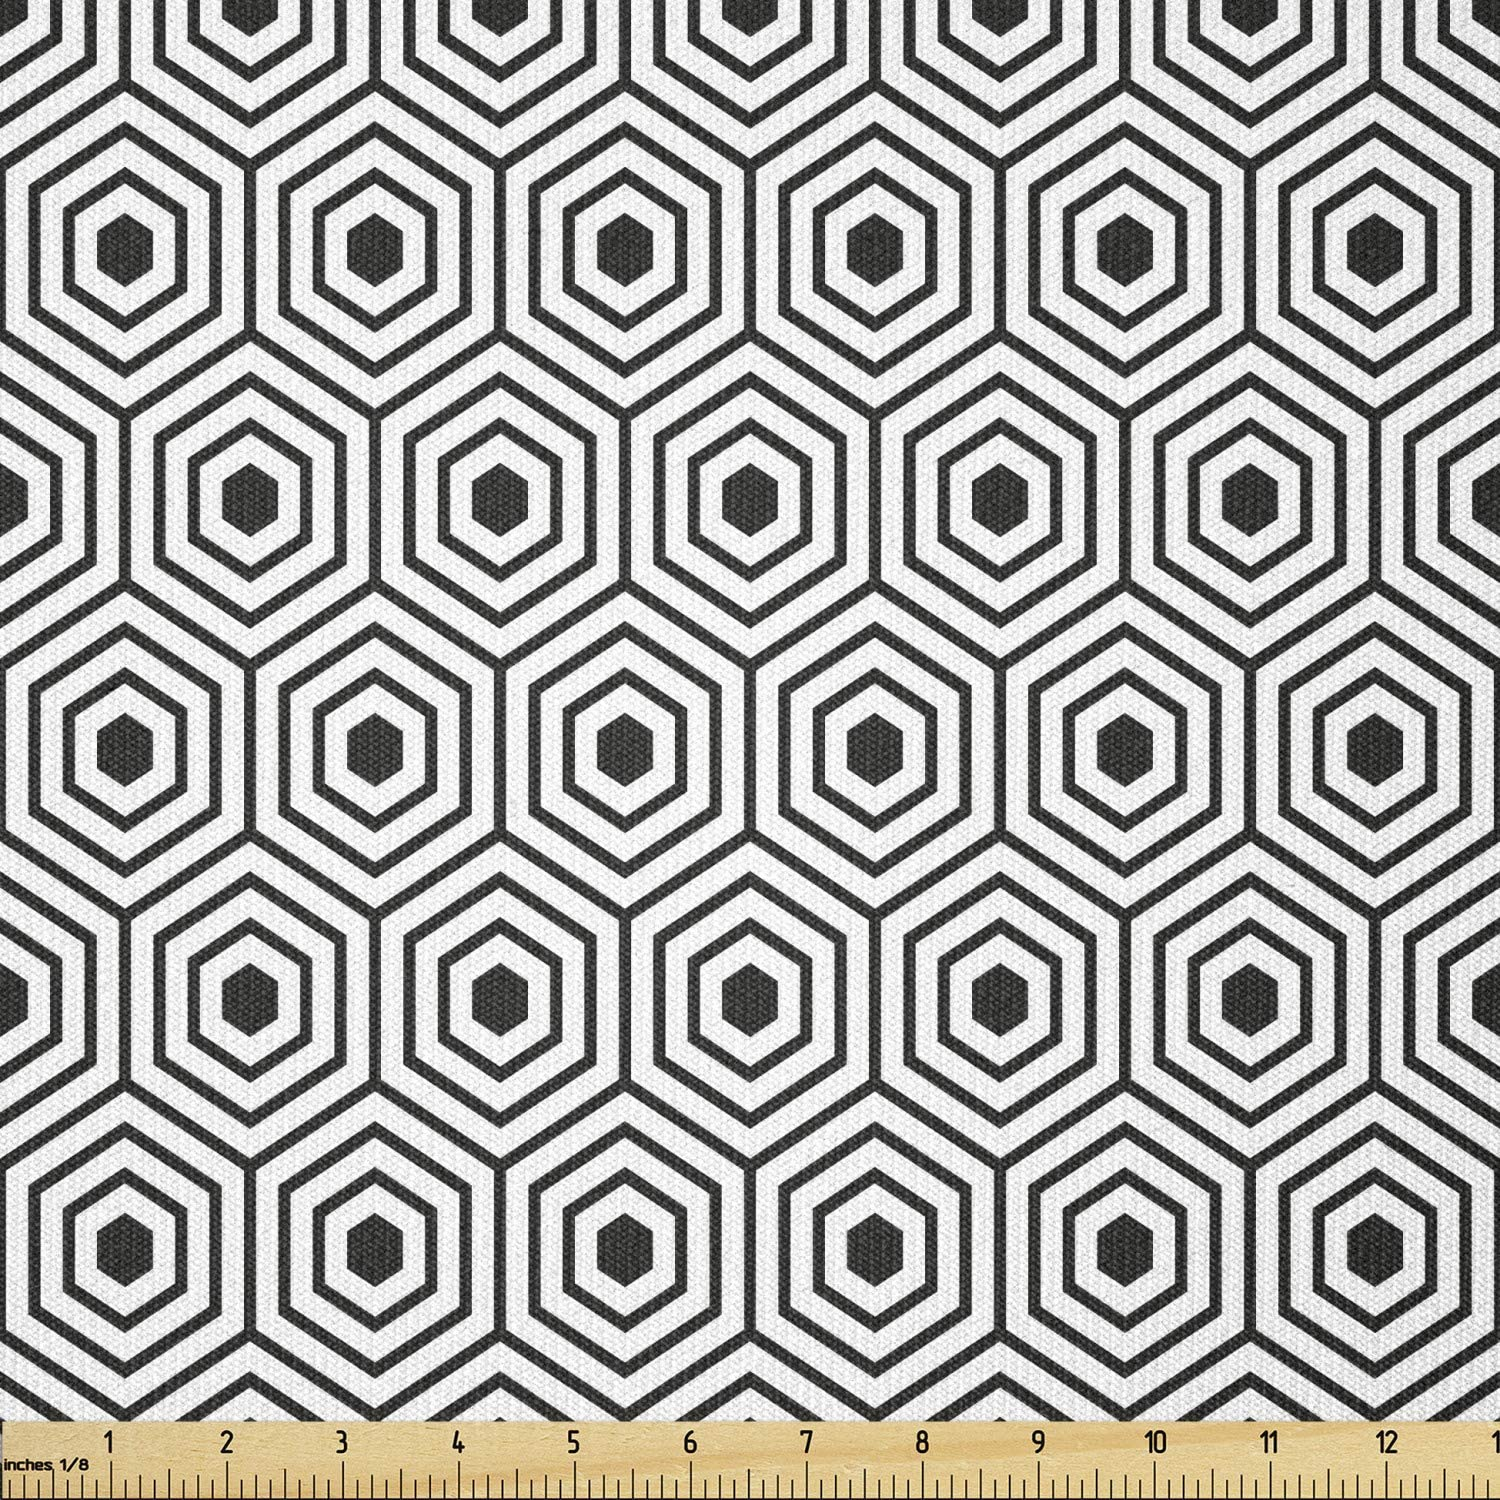 Ambesonne Minimalism Free shipping New Our shop OFFers the best service Fabric by The Geometric Hexagonal Sha Yard